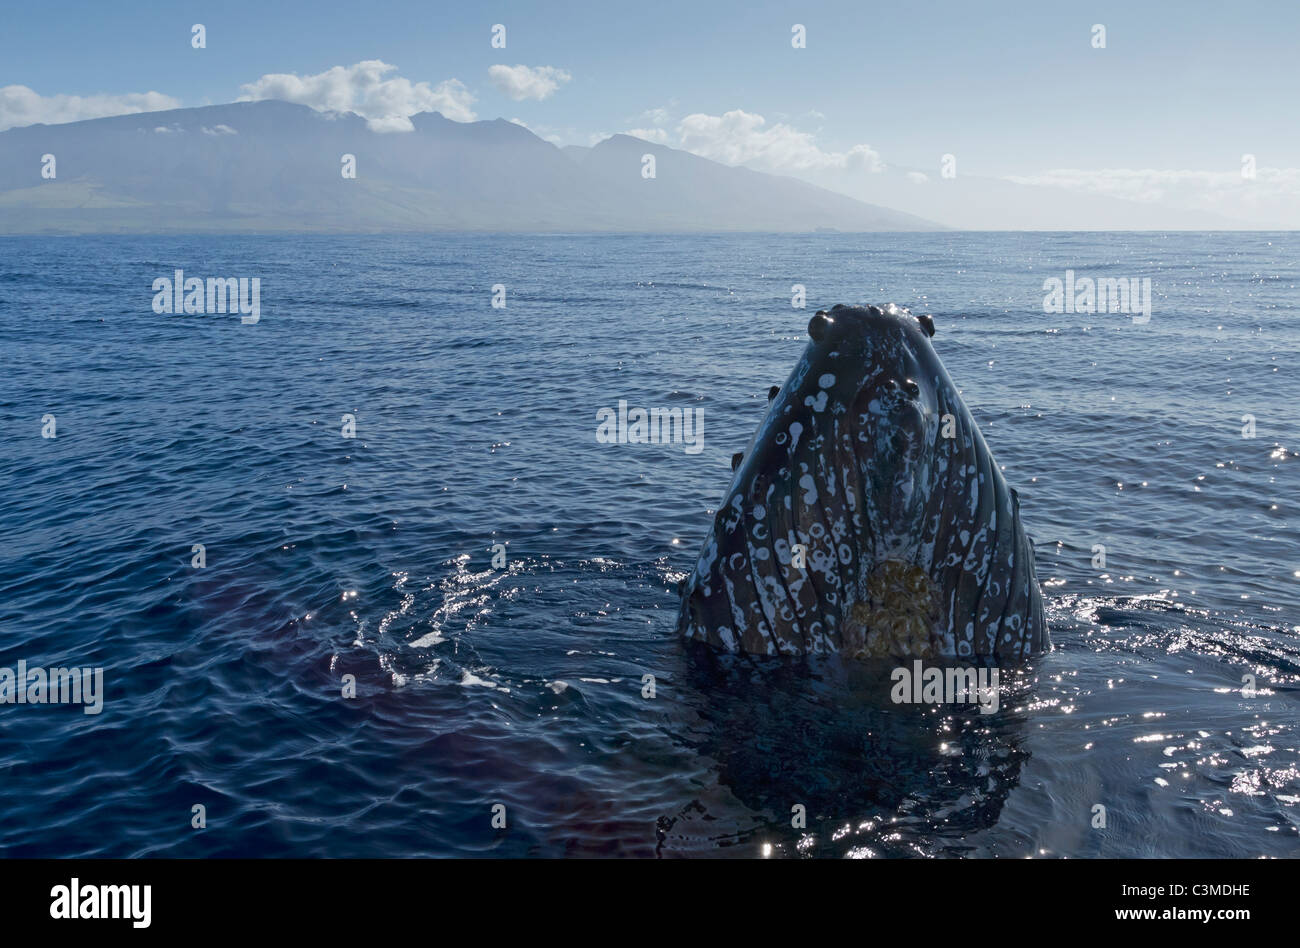 Humpback comes up to look at the boat with the West Maui Mountains in the distance. - Stock Image